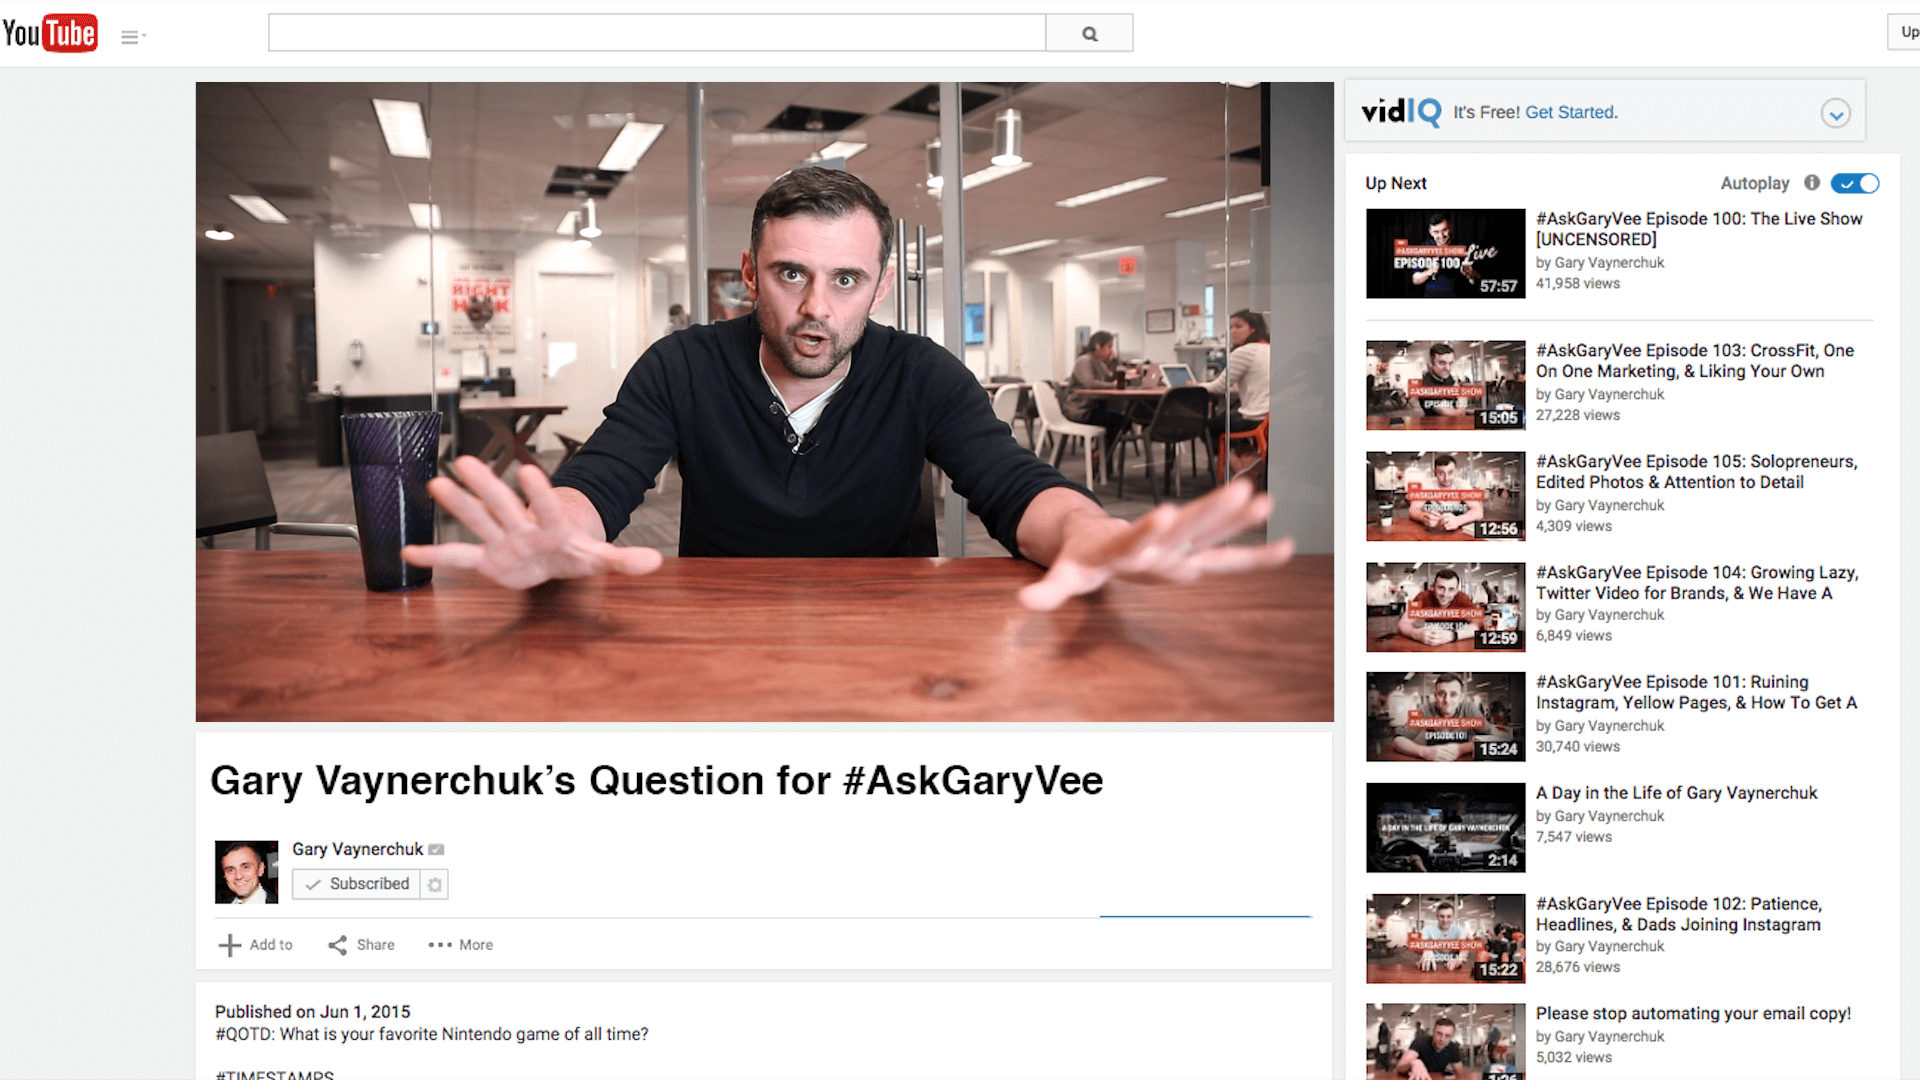 #AskGaryVee Episode 107